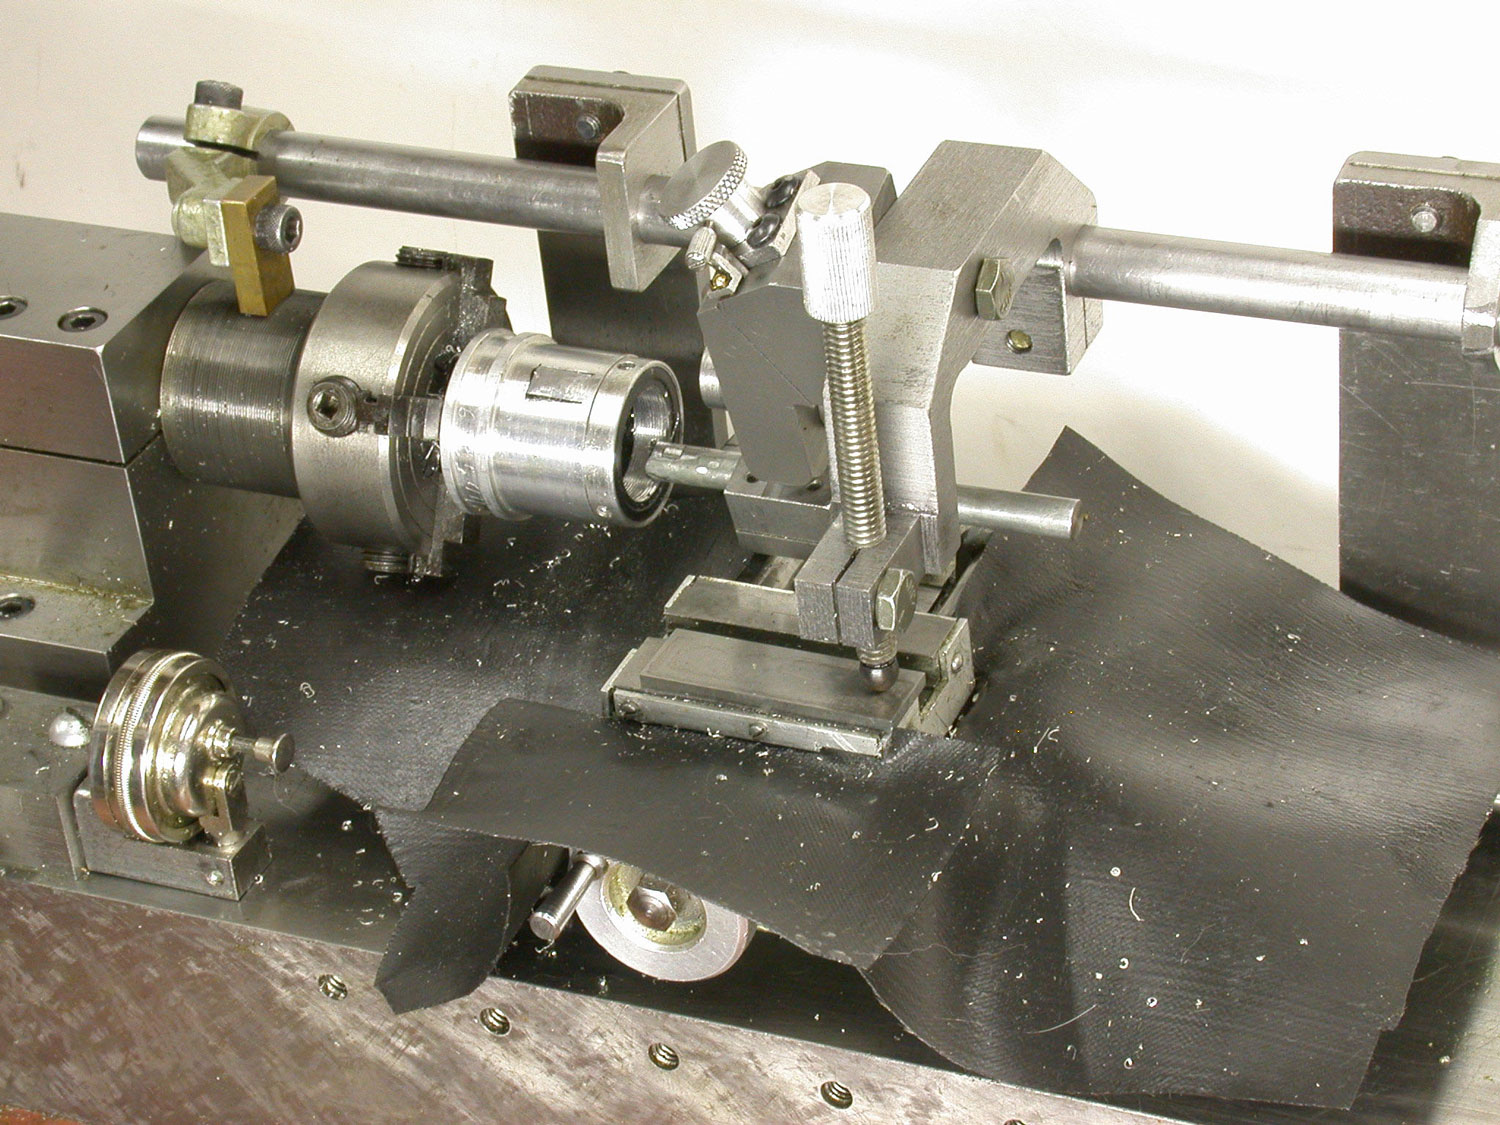 An Adjustable Threading Feed Attachment for a Lathe Without